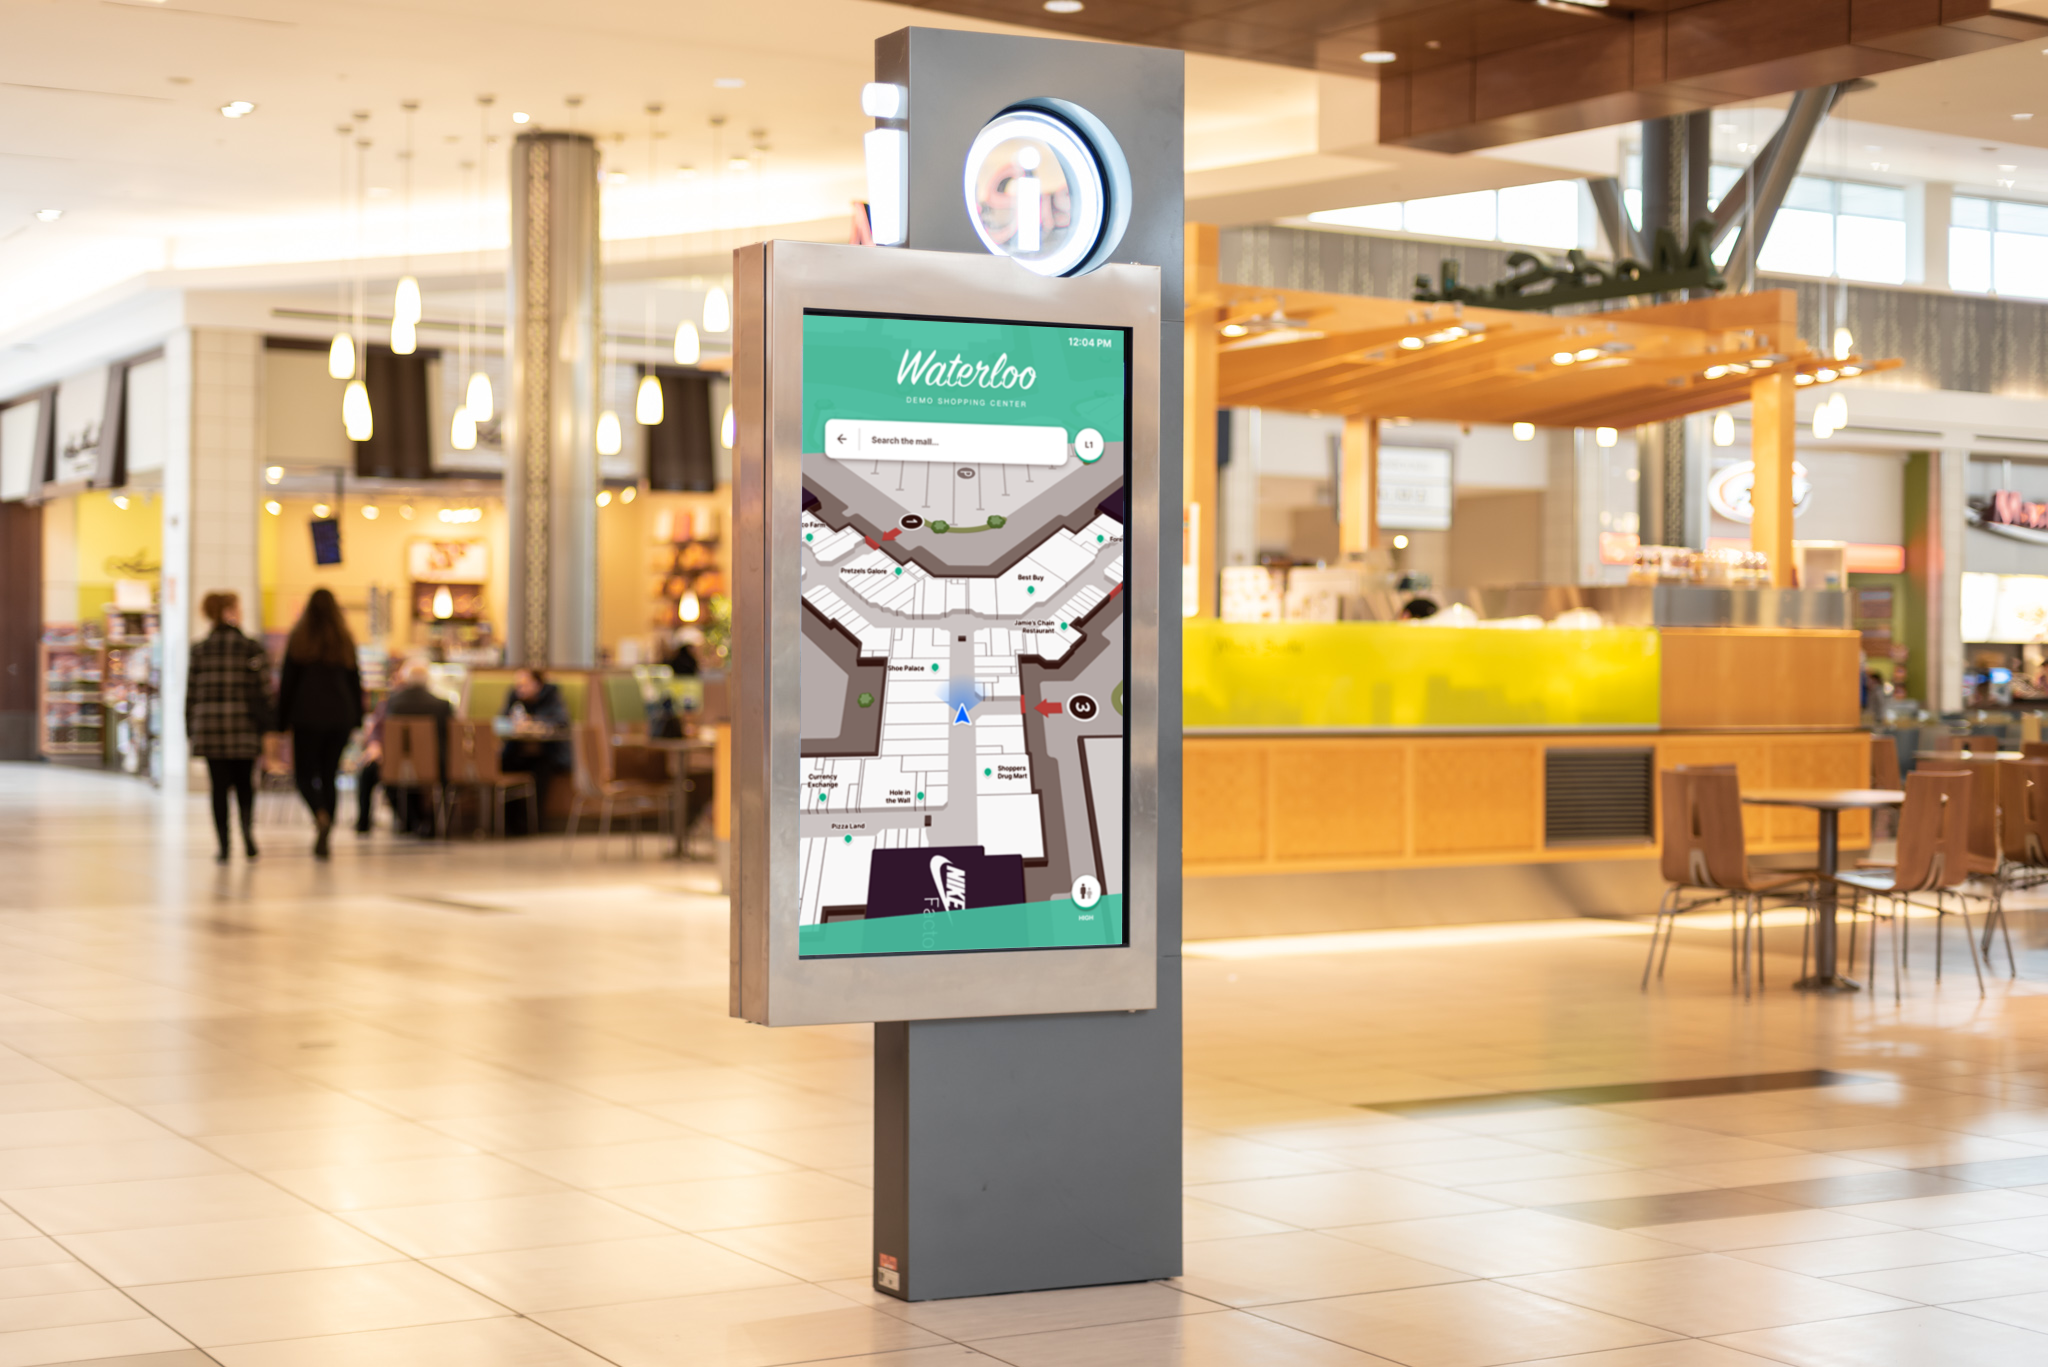 A search kiosk in a mall food court